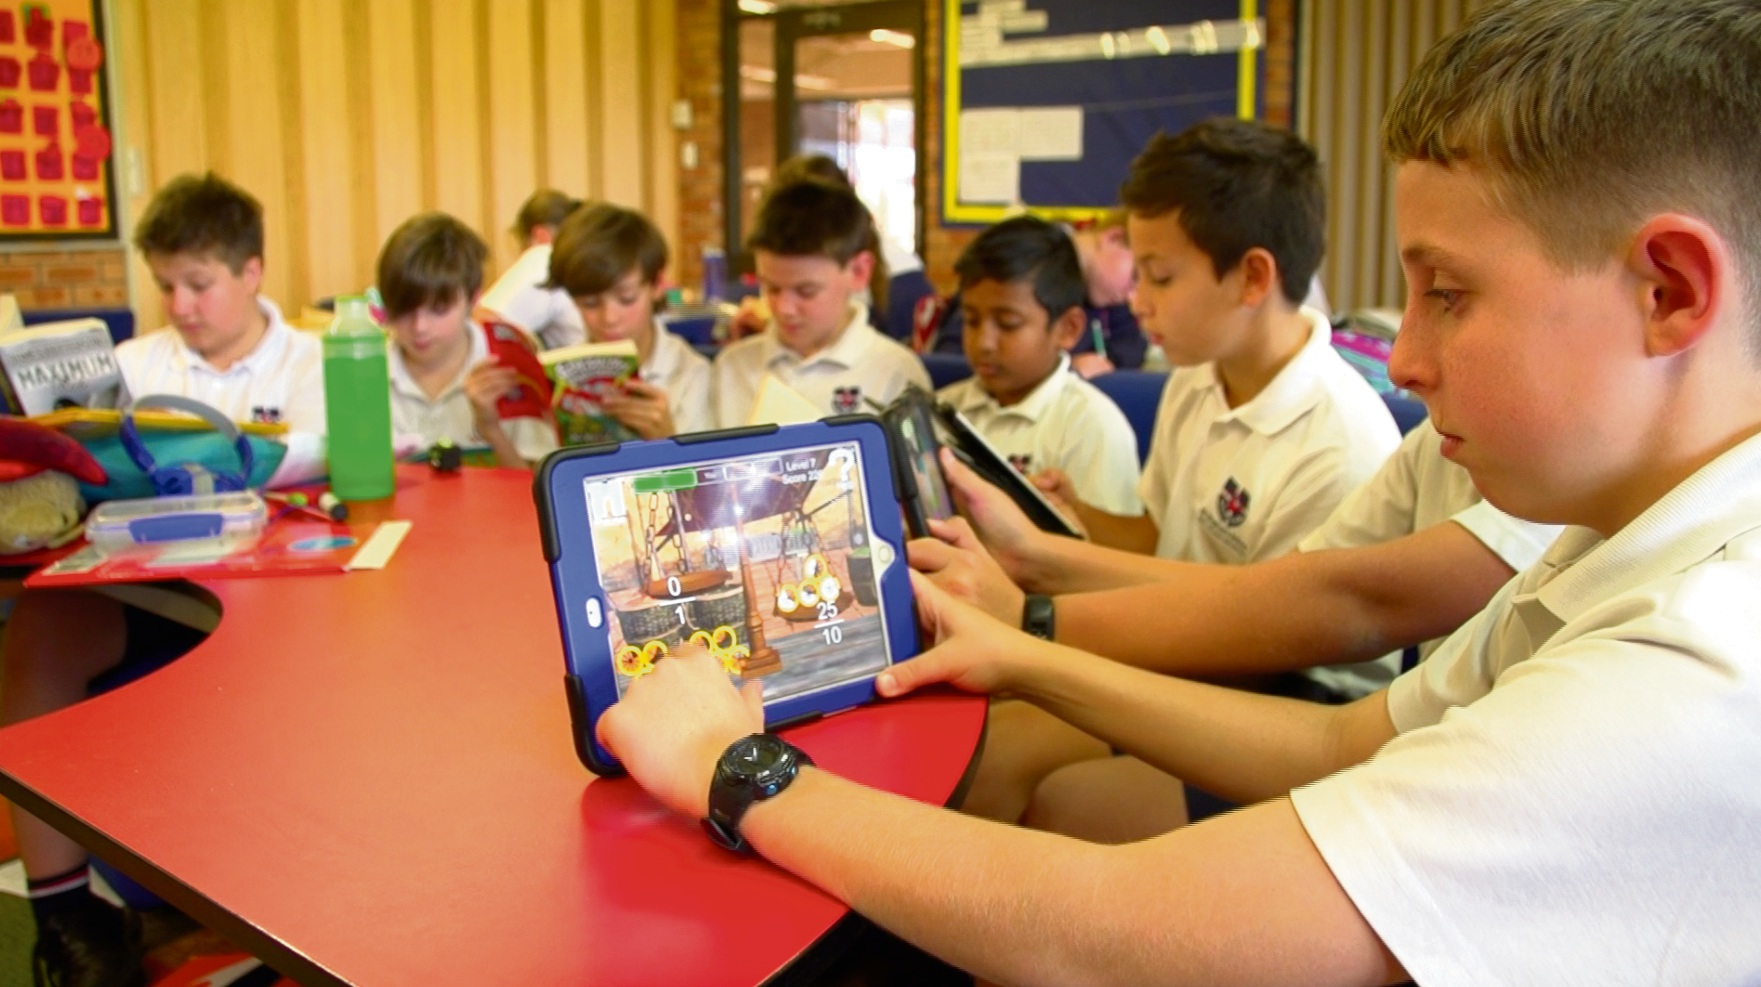 St Stephen's School Year 6 student Brayden Connor using the Abydos app.